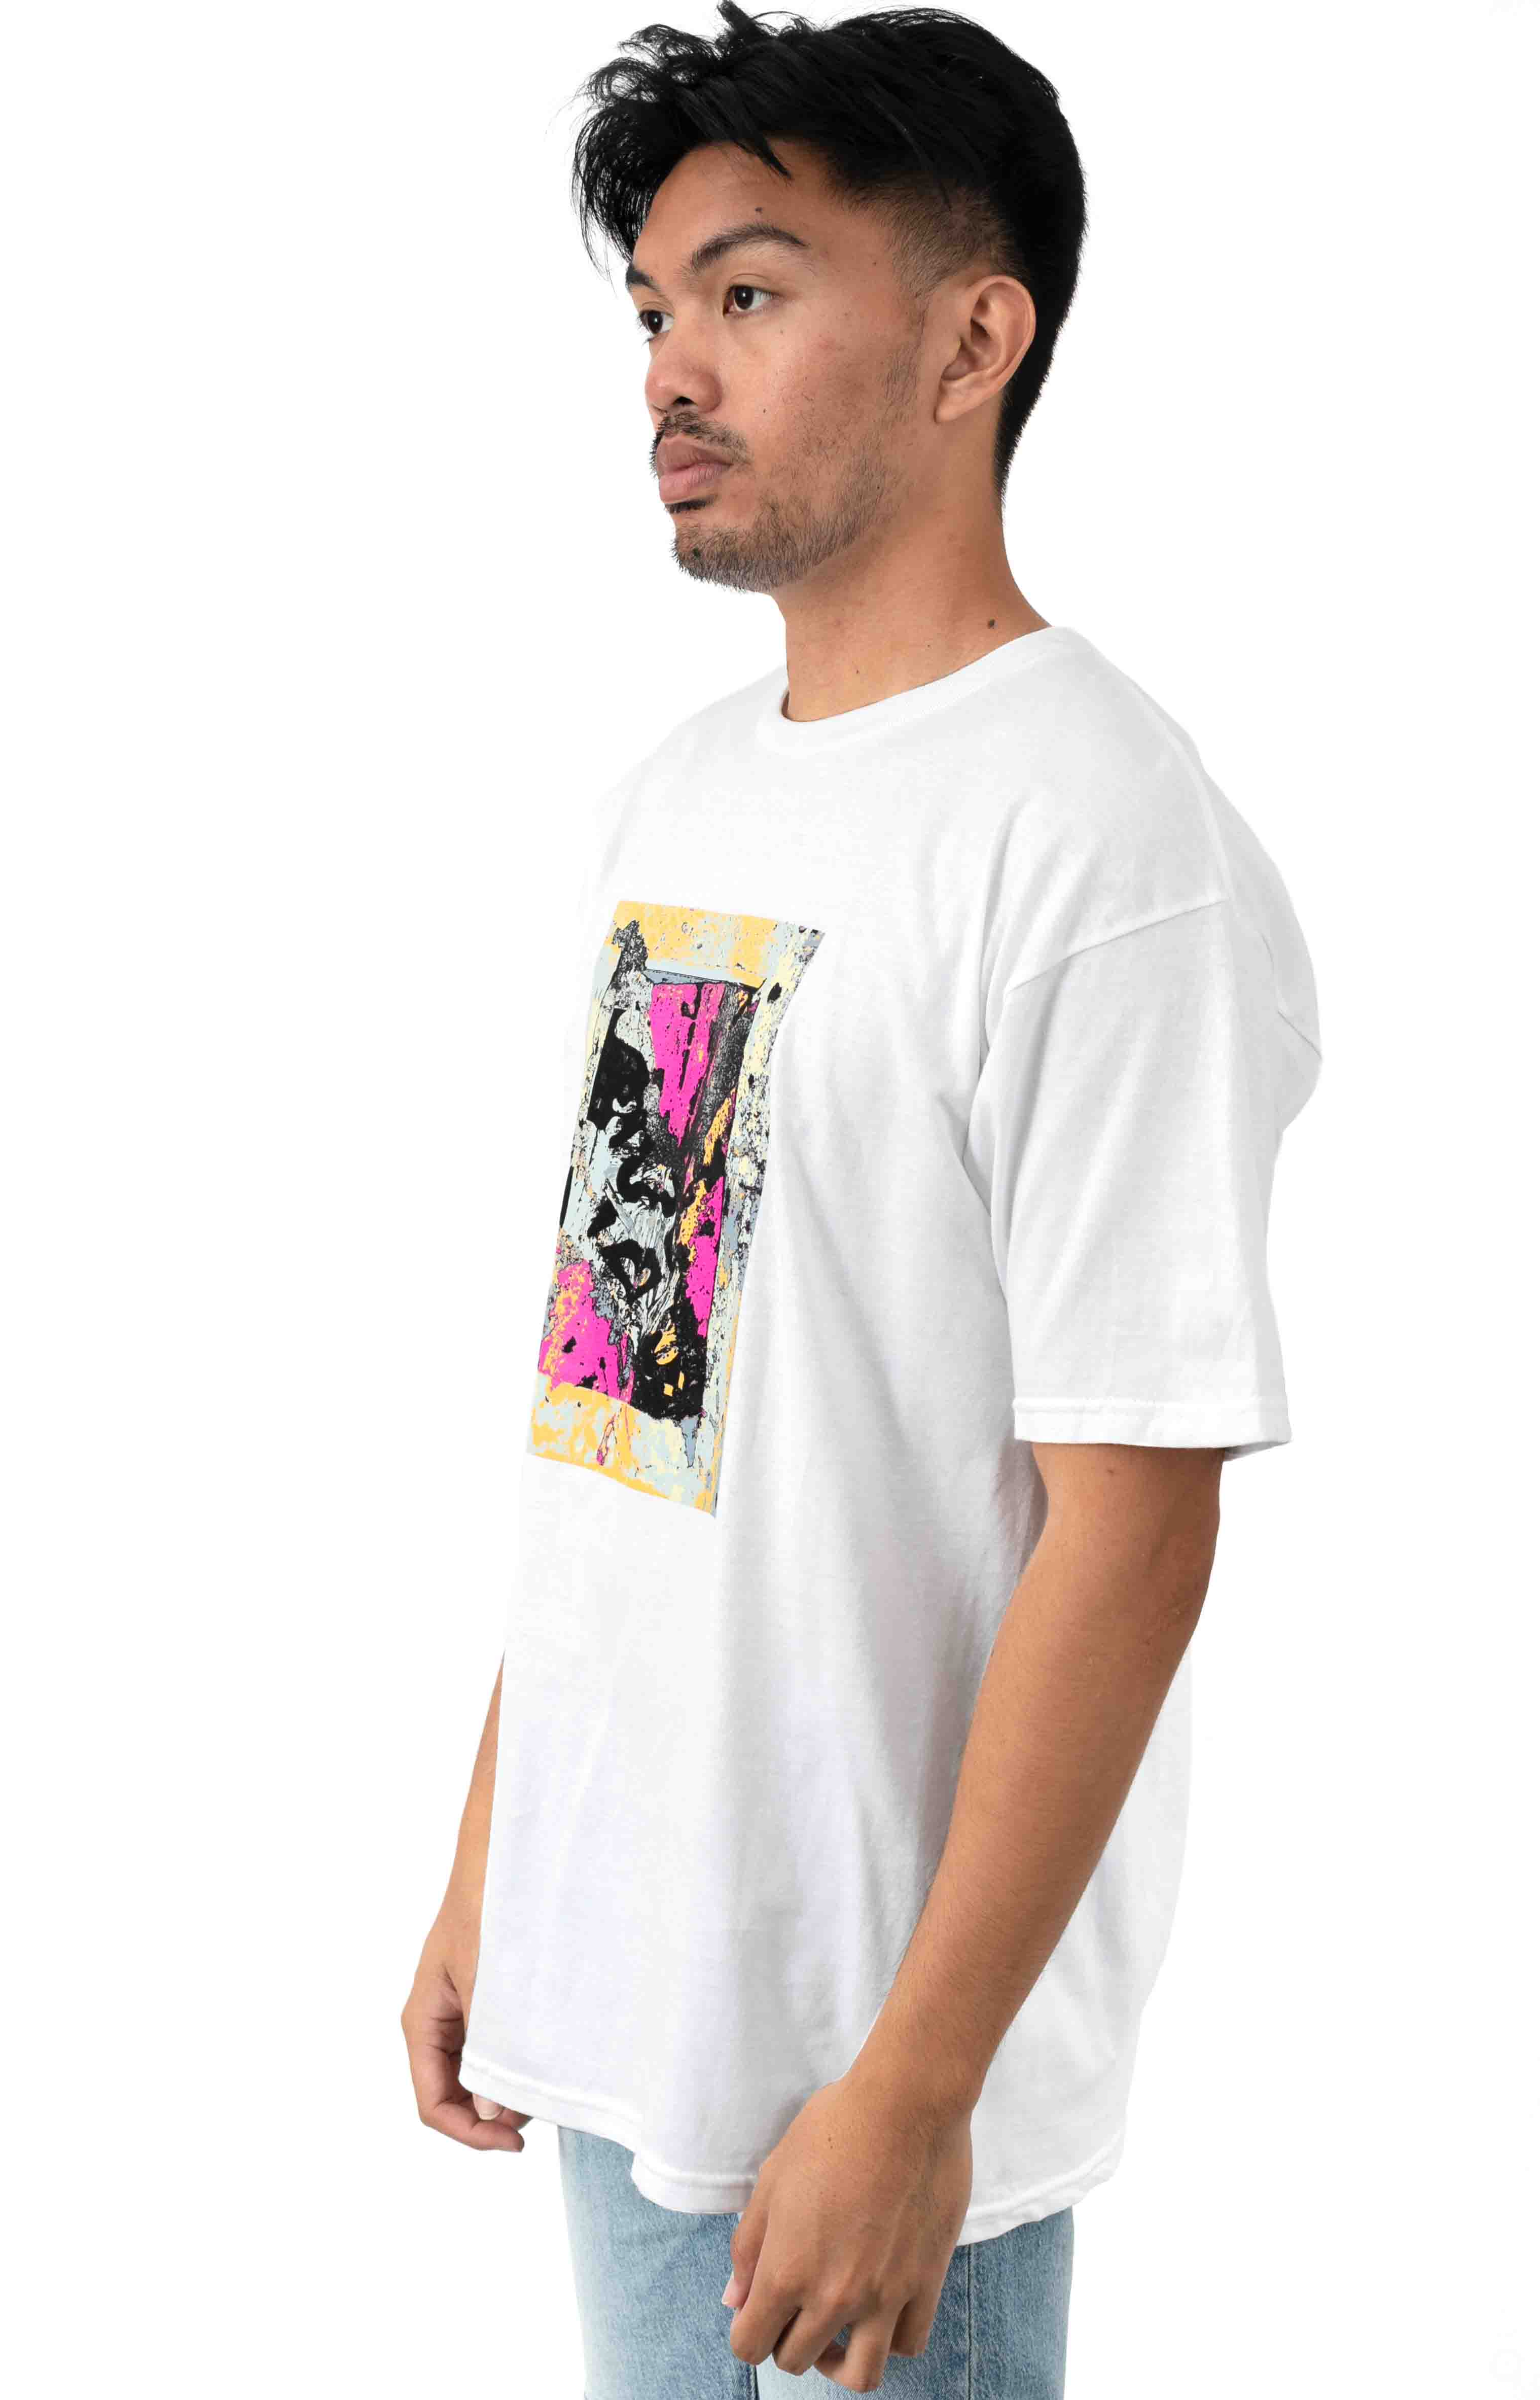 Enhanced Disintegration T-Shirt - White  2